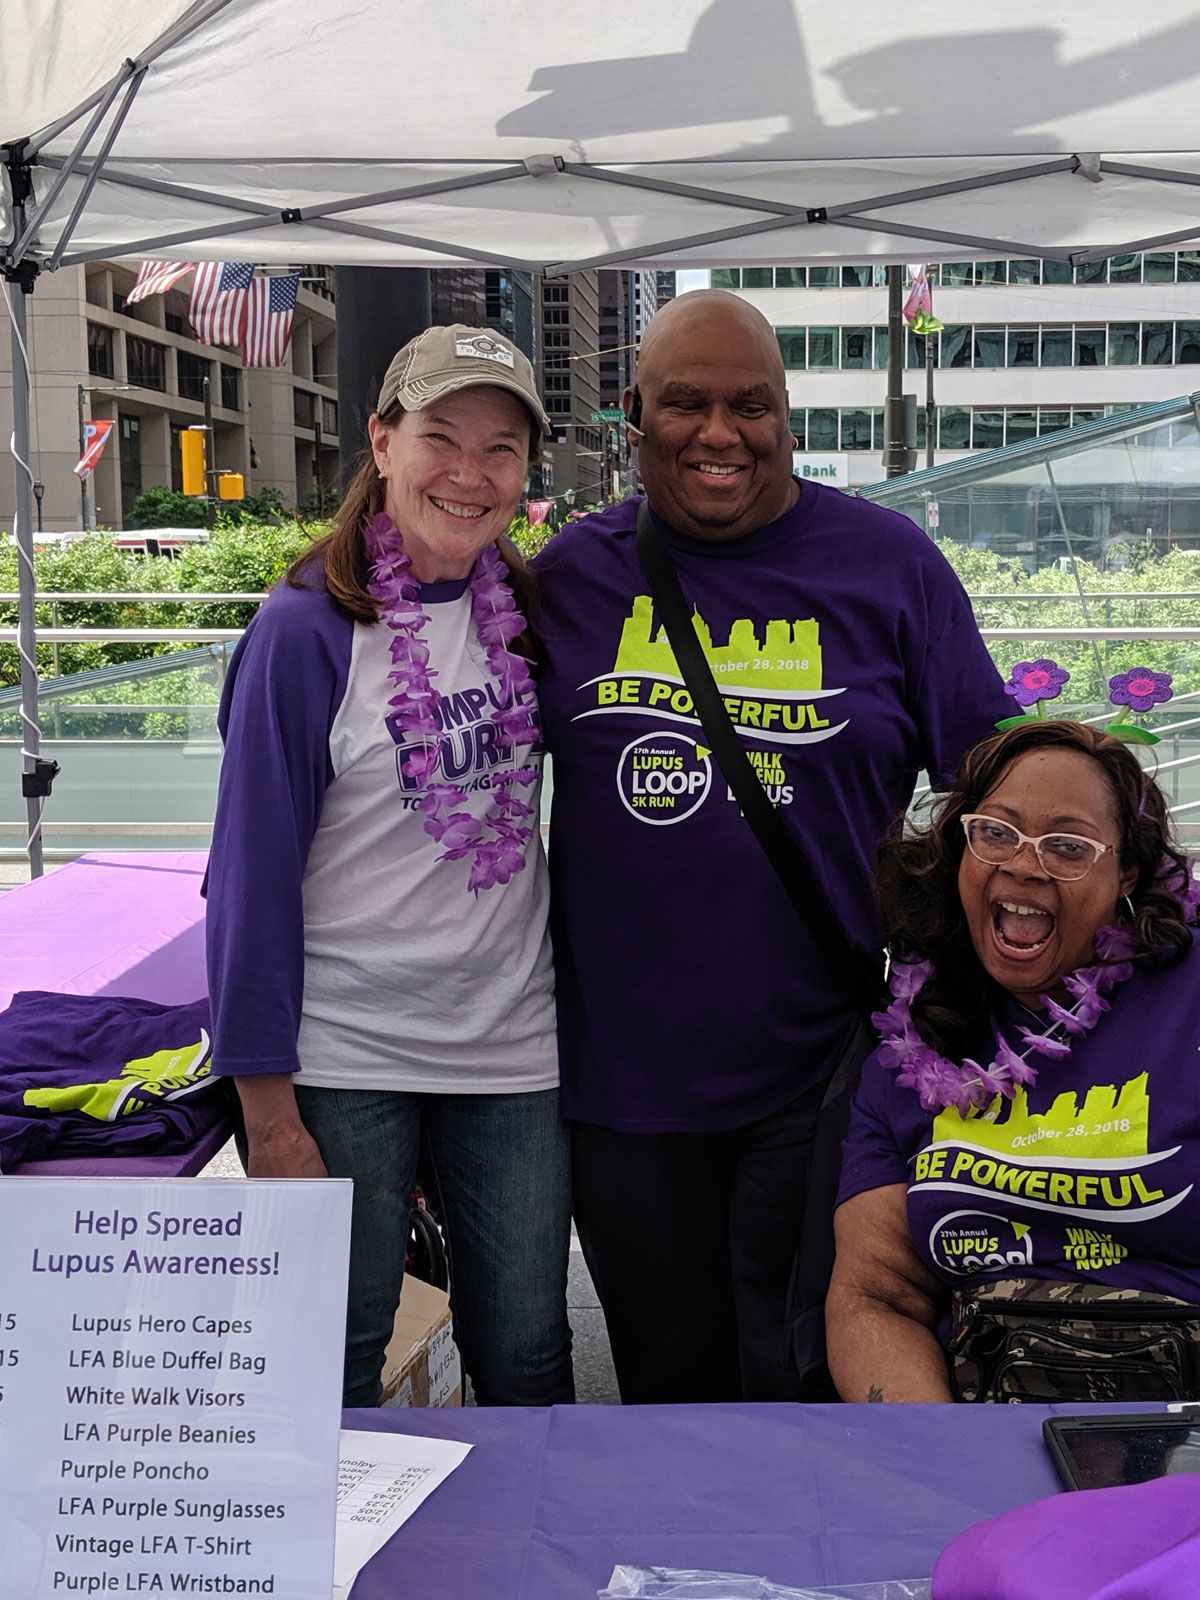 The Lupus Foundation of America